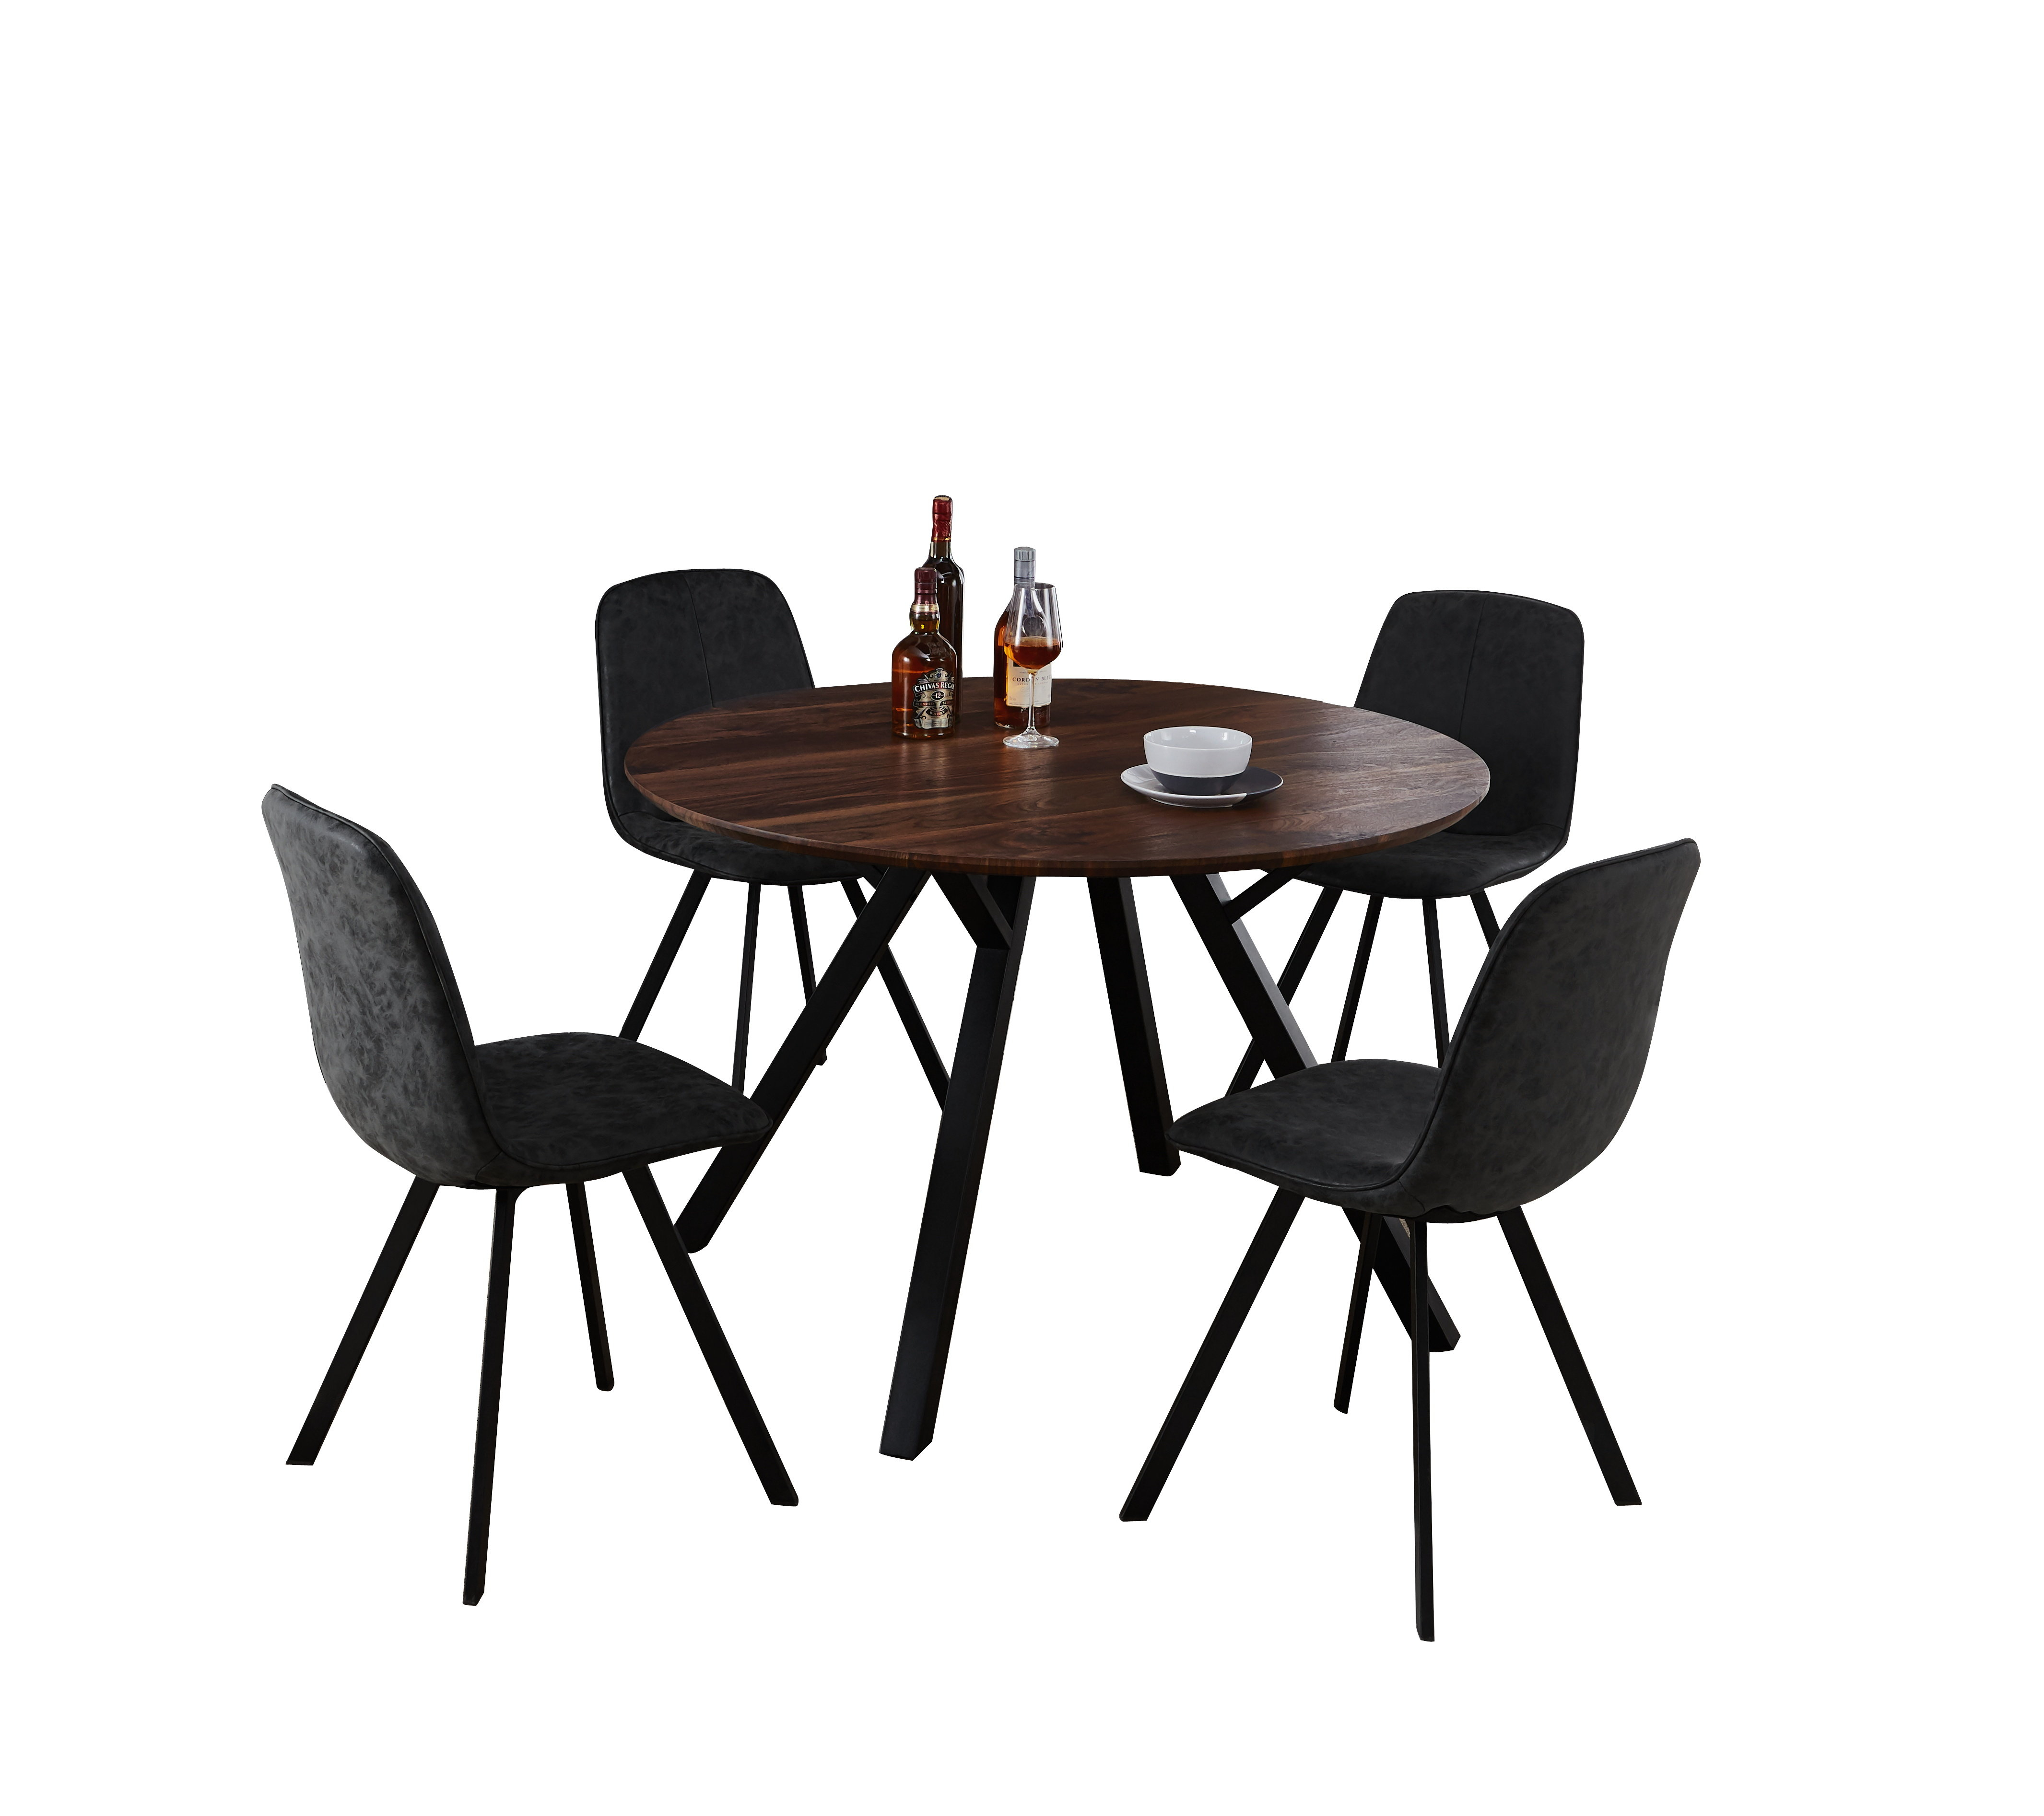 Malmo Design Round Table 5 Piece Solid Wood Dining Set Pertaining To Most Recently Released Liles 5 Piece Breakfast Nook Dining Sets (Image 15 of 20)